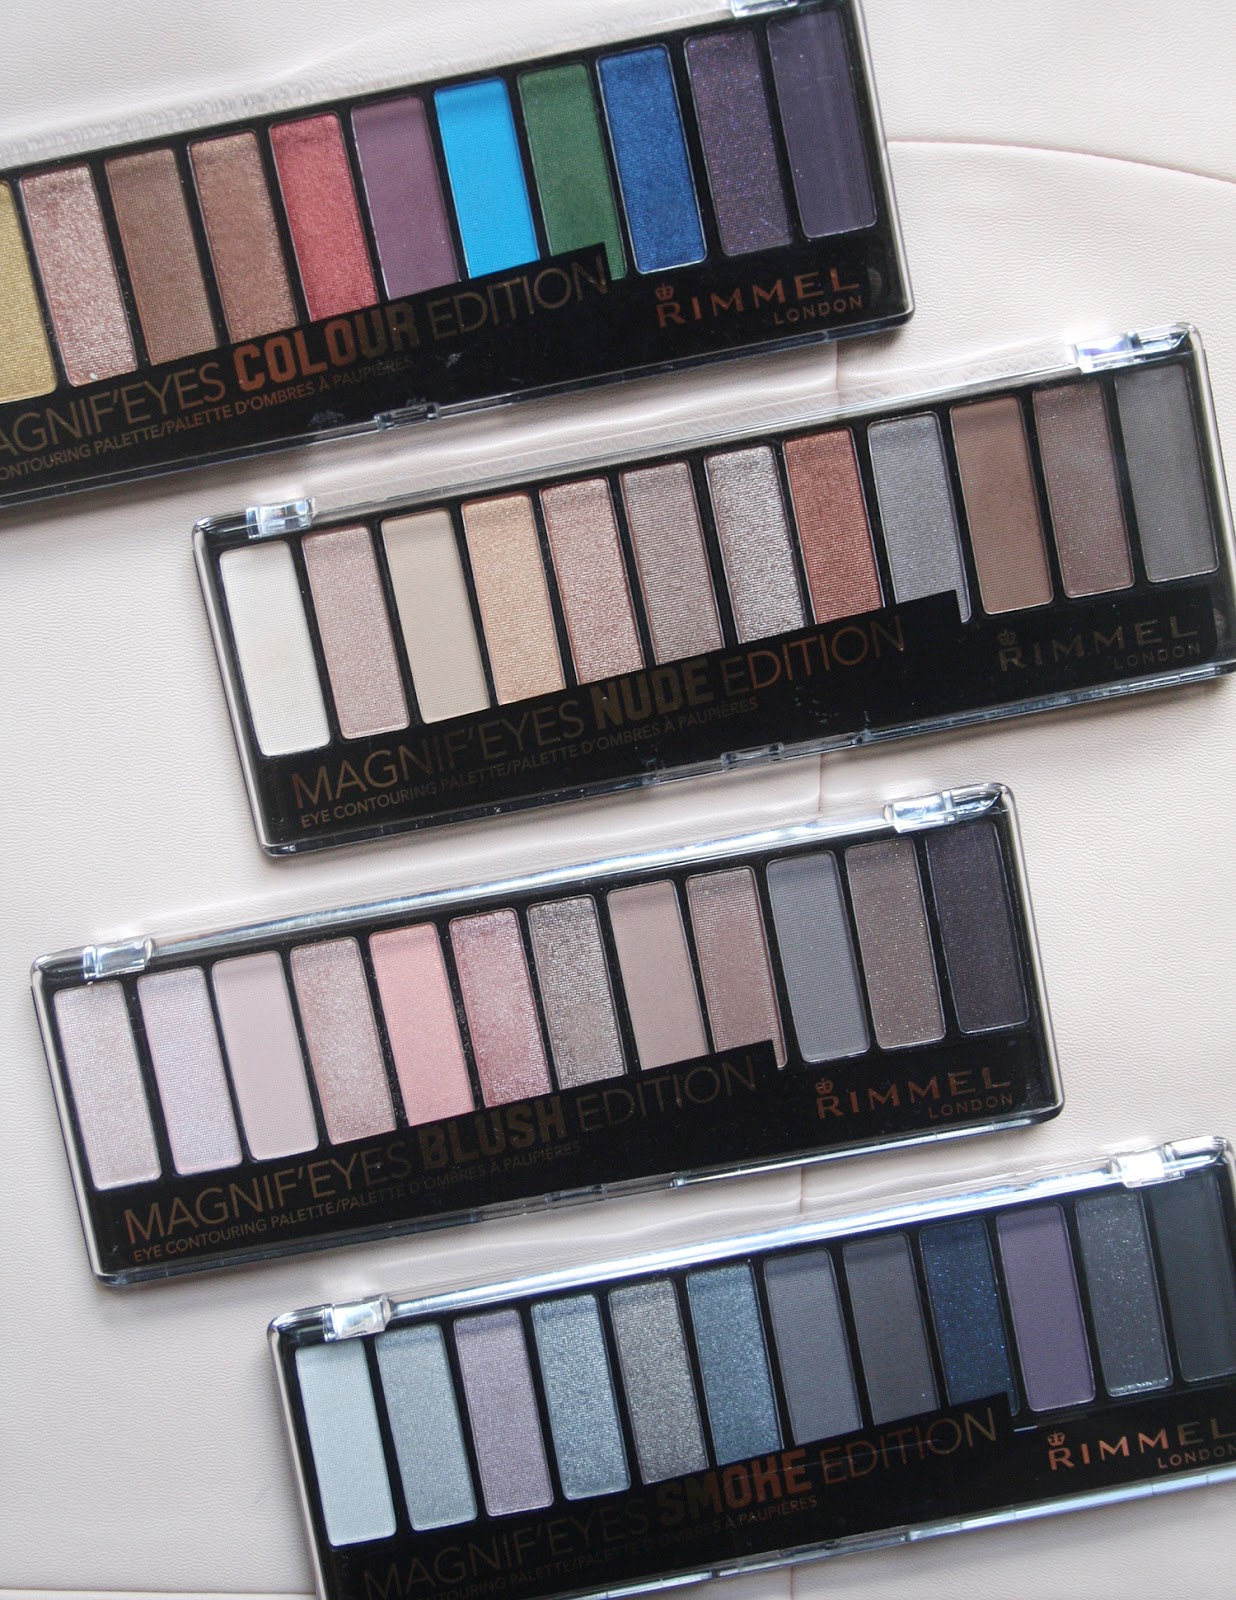 6083edb6881 I mentioned in my haul that I wasn't a huge fan of the packaging. It looks  and feels almost identical to Chi Chi's old 12 pan eyeshadow palettes, ...